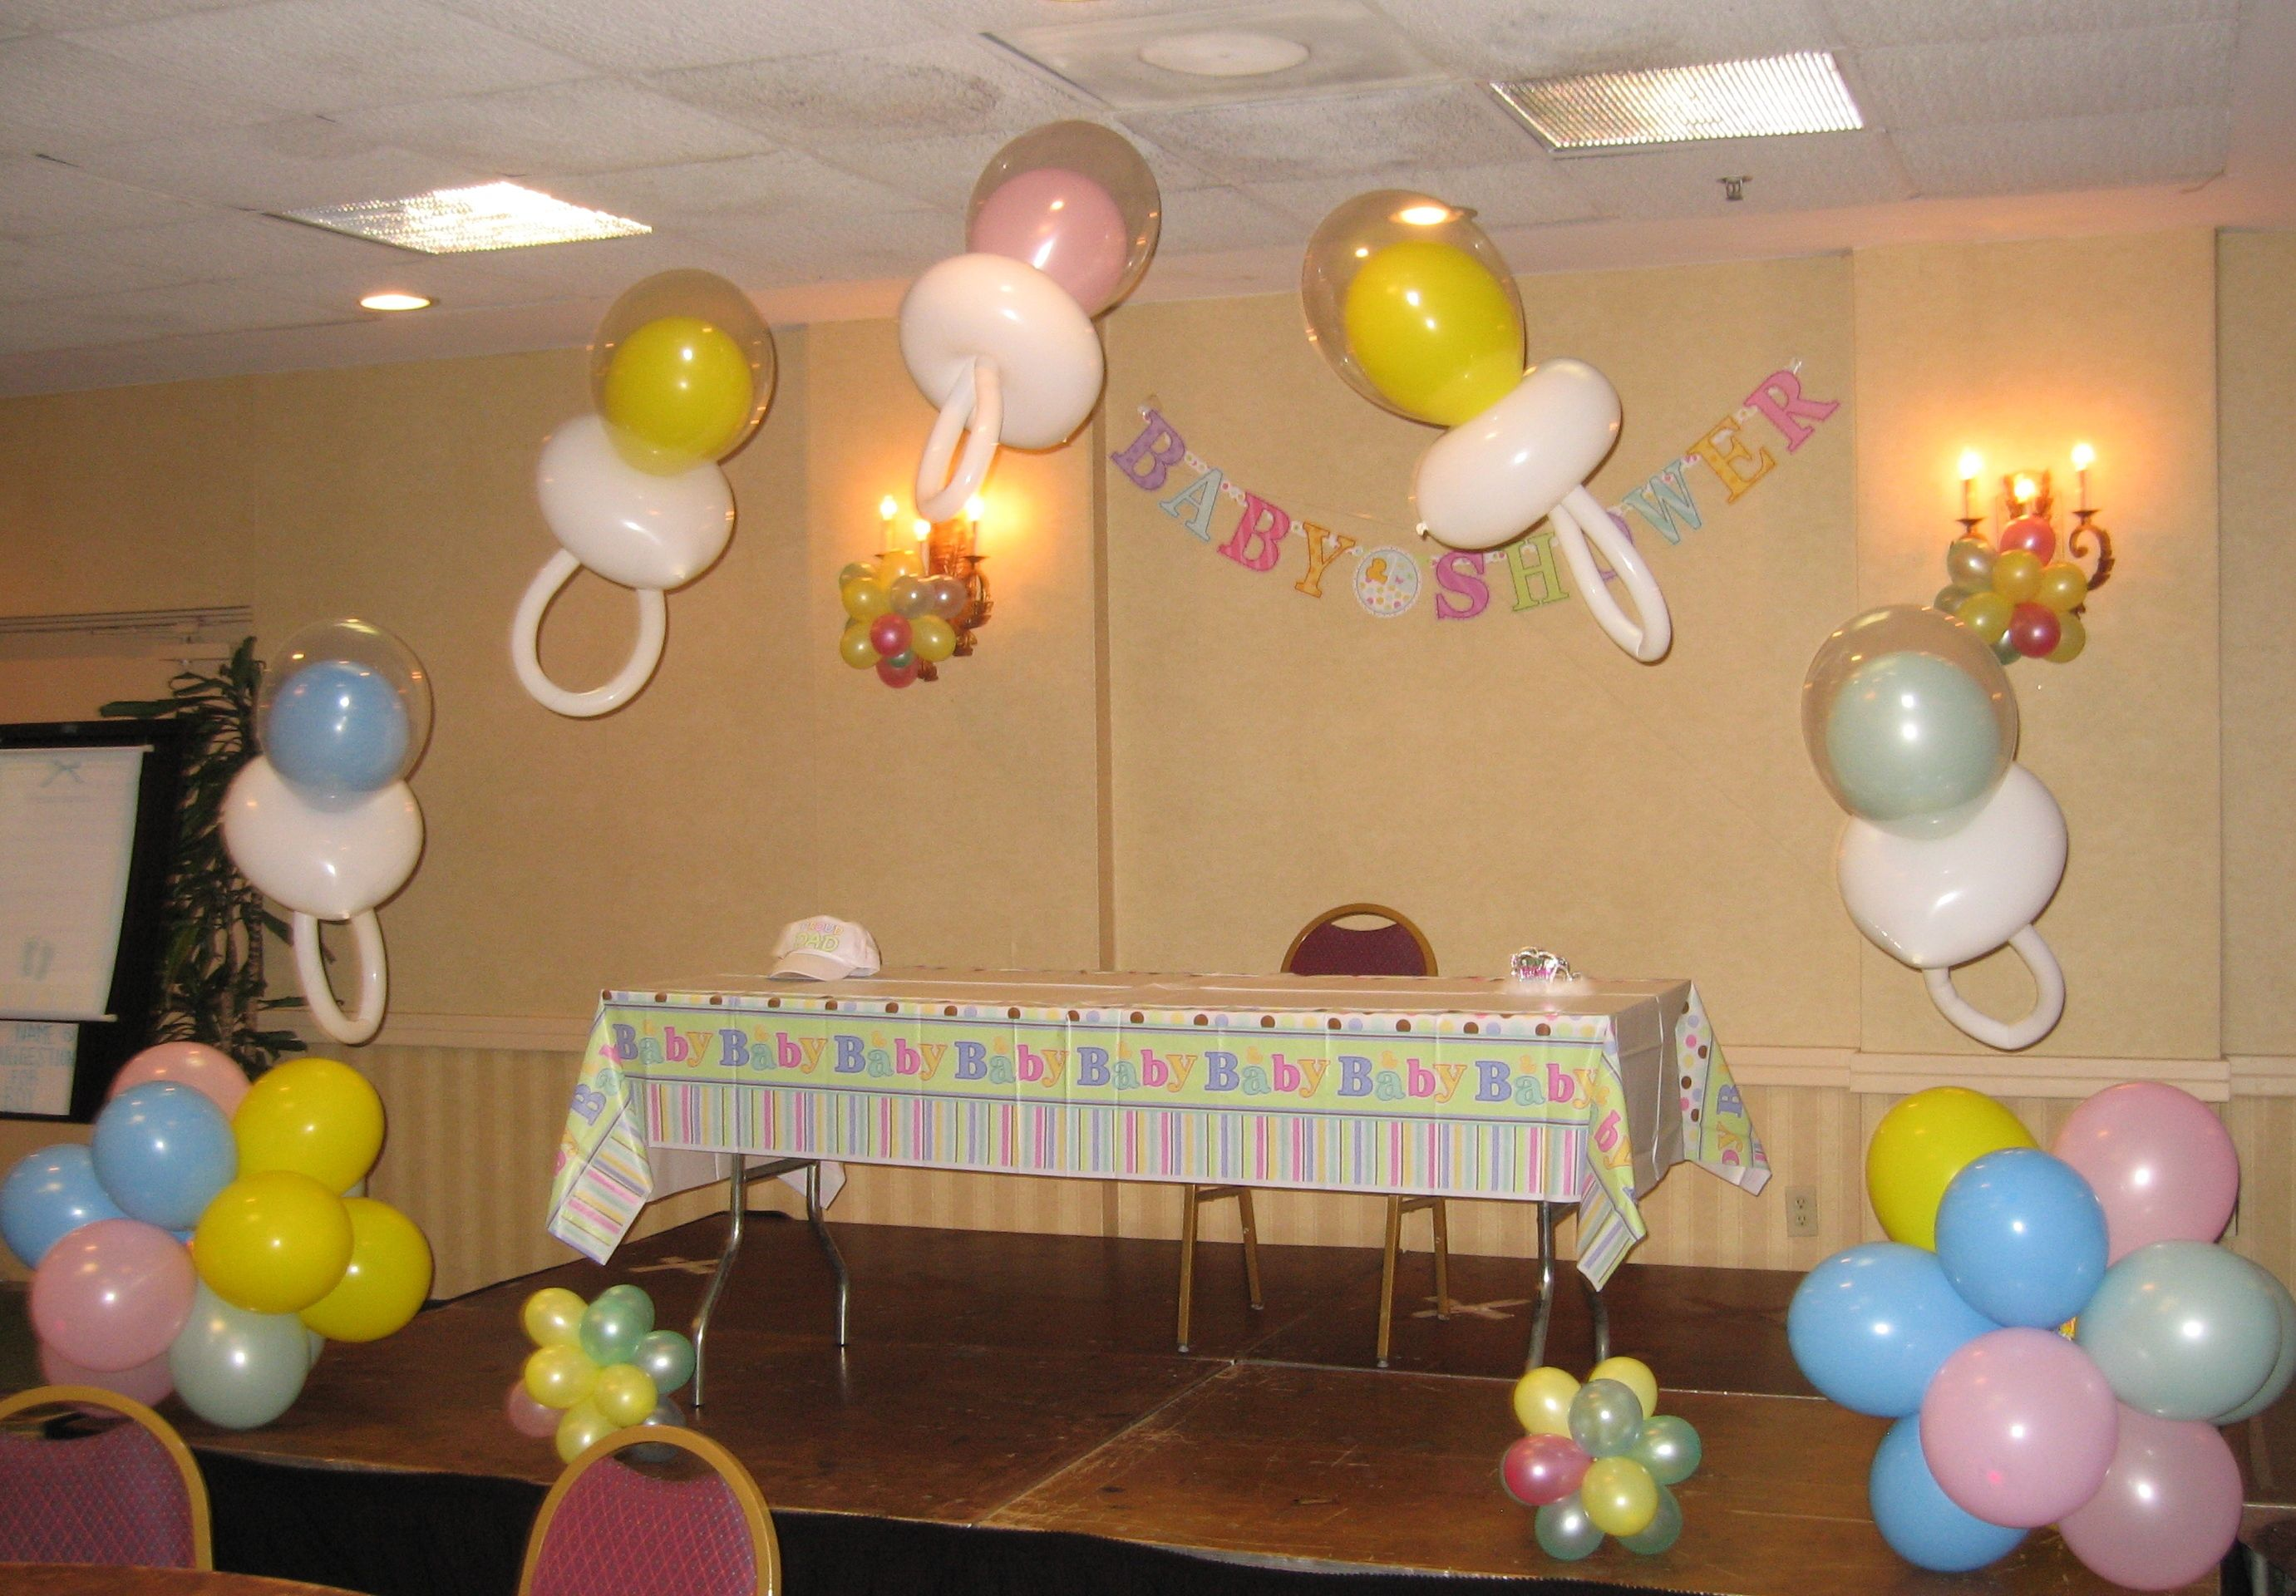 Baby shower balloon decor balloon decor pinterest for Baby shower decoration ideas with balloons